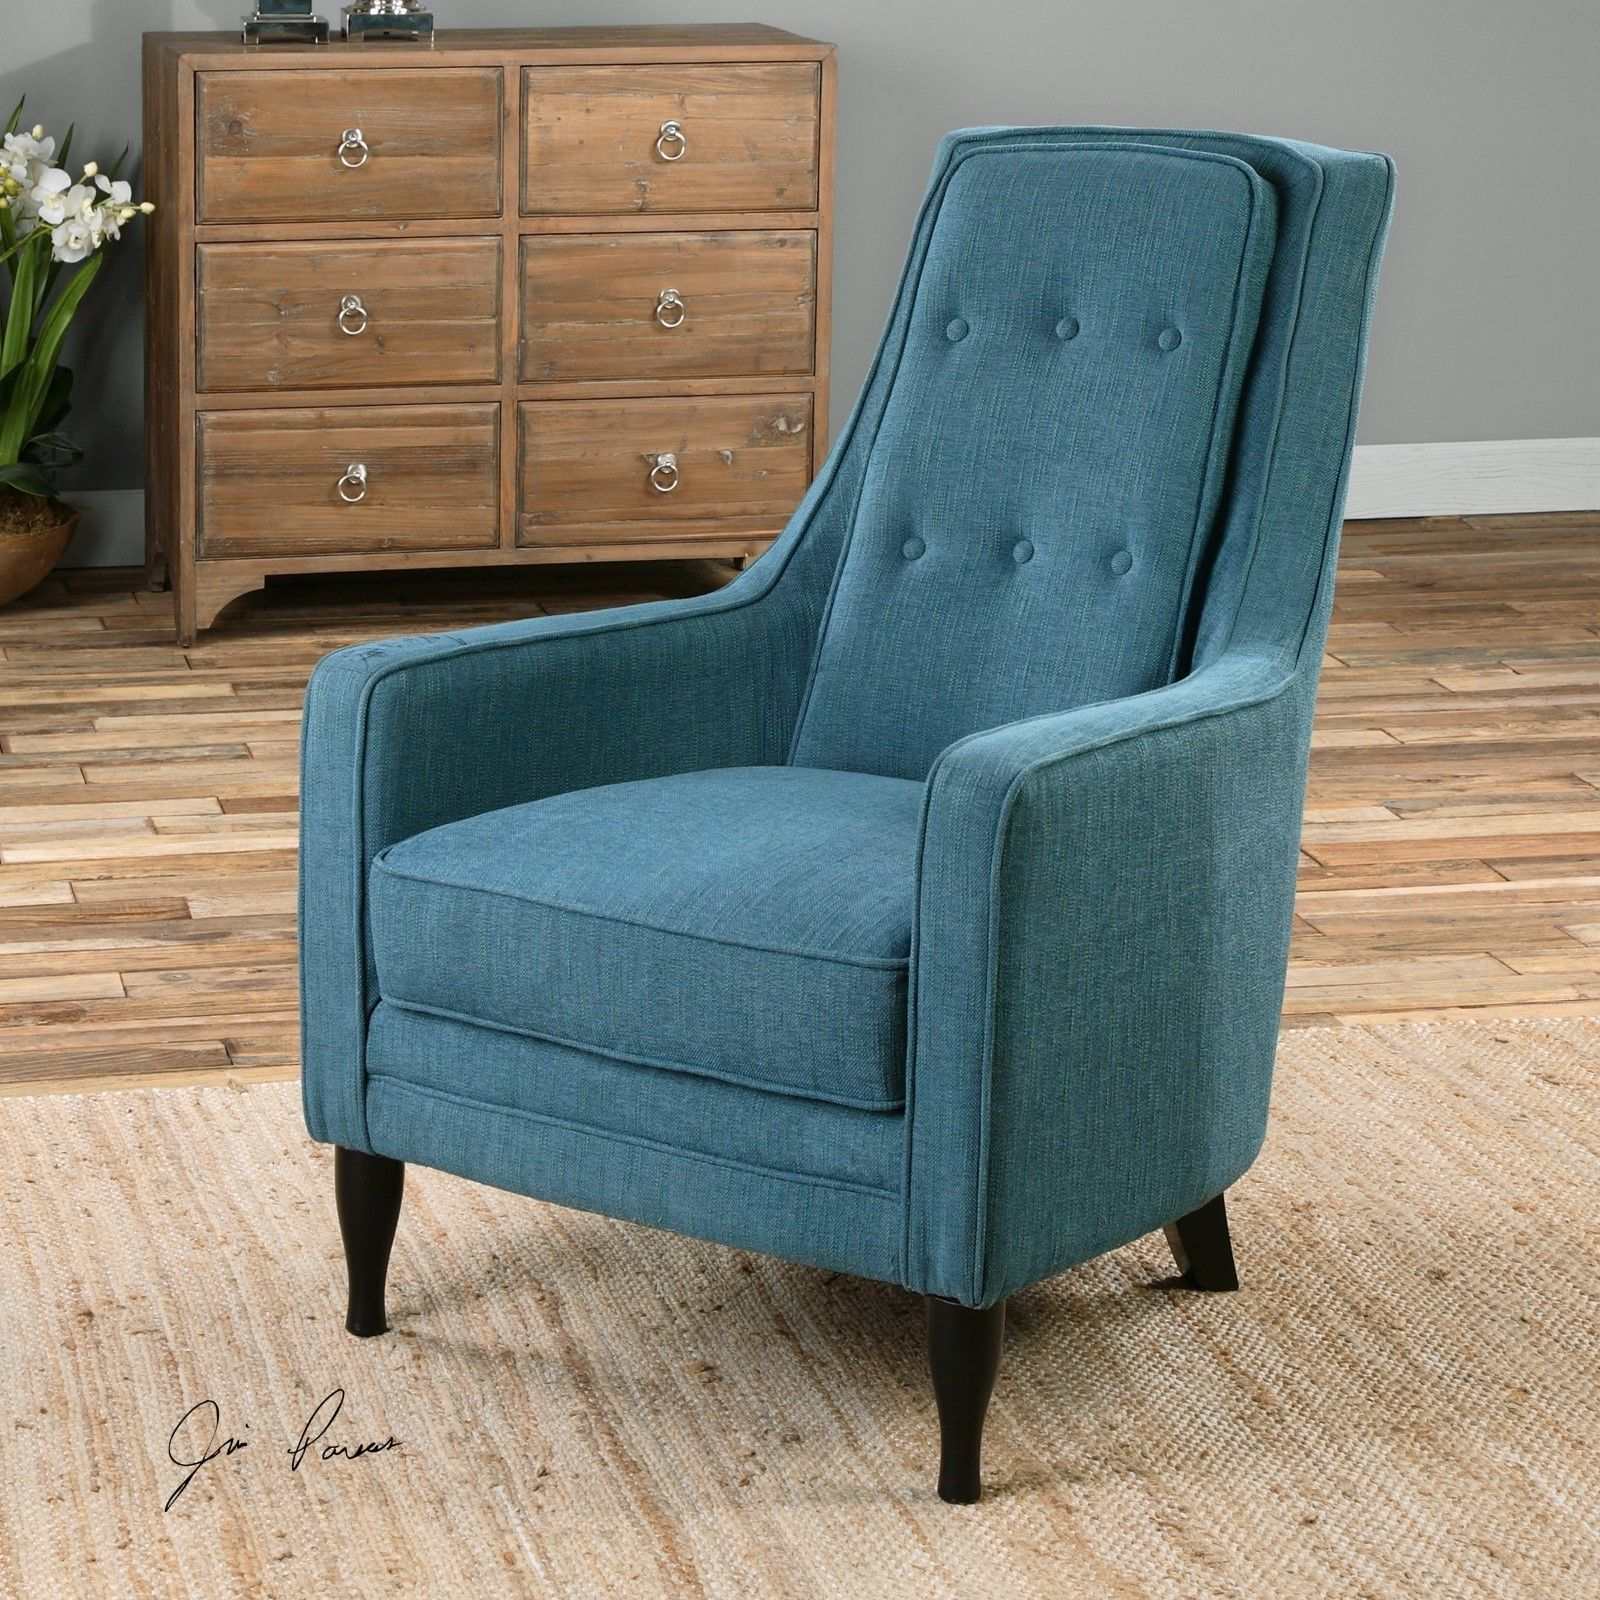 Blue Accent Chair With Arms Peacock Plush Blue Arm High Back Accent Club Chair Ebony